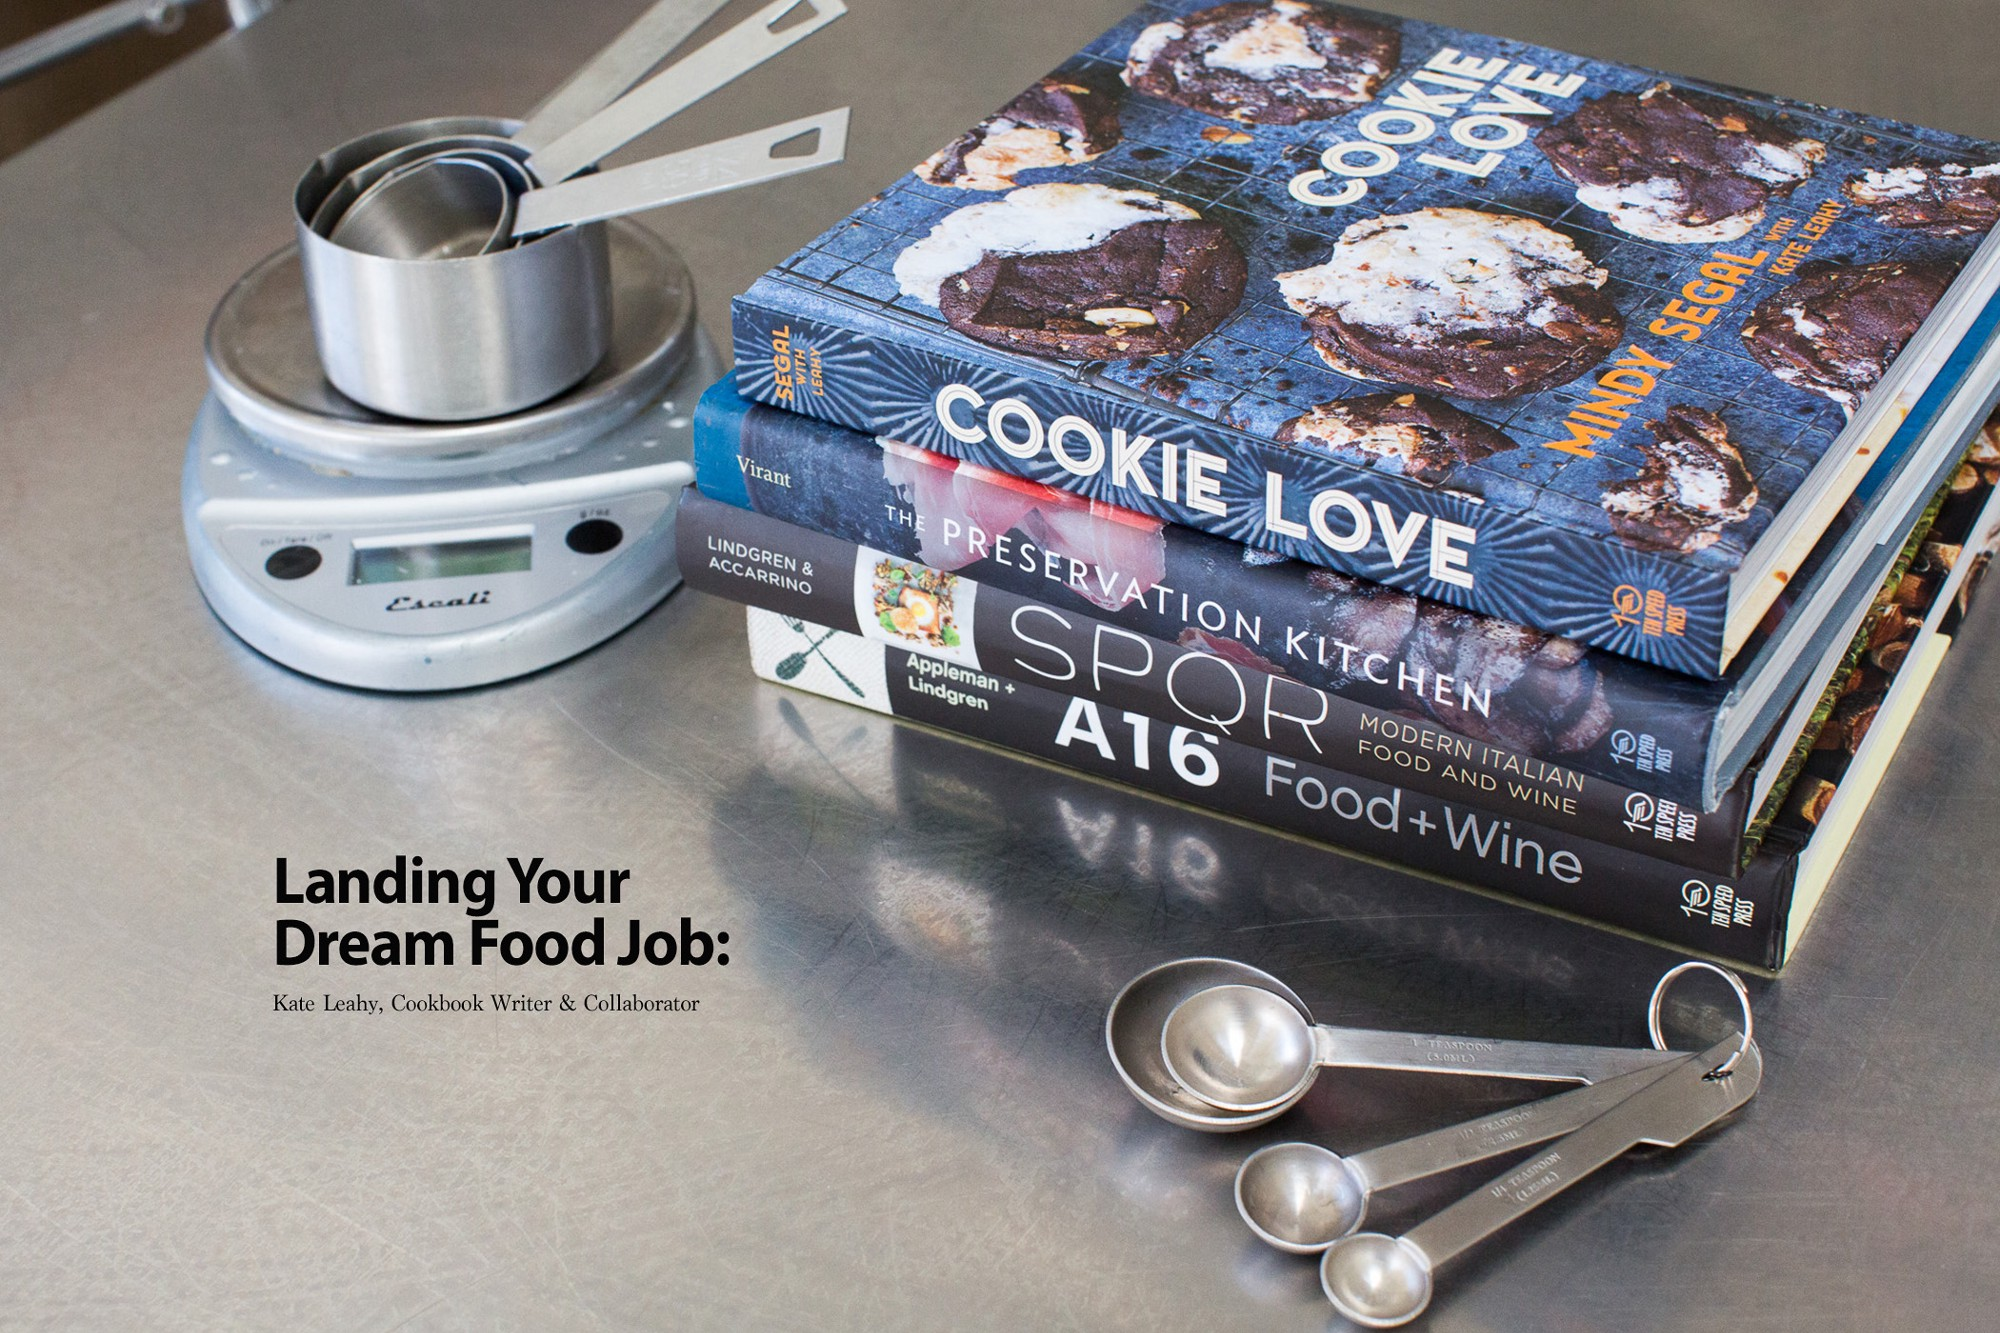 landing your dream food job kate leahy cookbook writer kate leahy has the dream food job you ve never heard of she is a food writer and recipe tester who collaborates chefs and restaurateurs to create